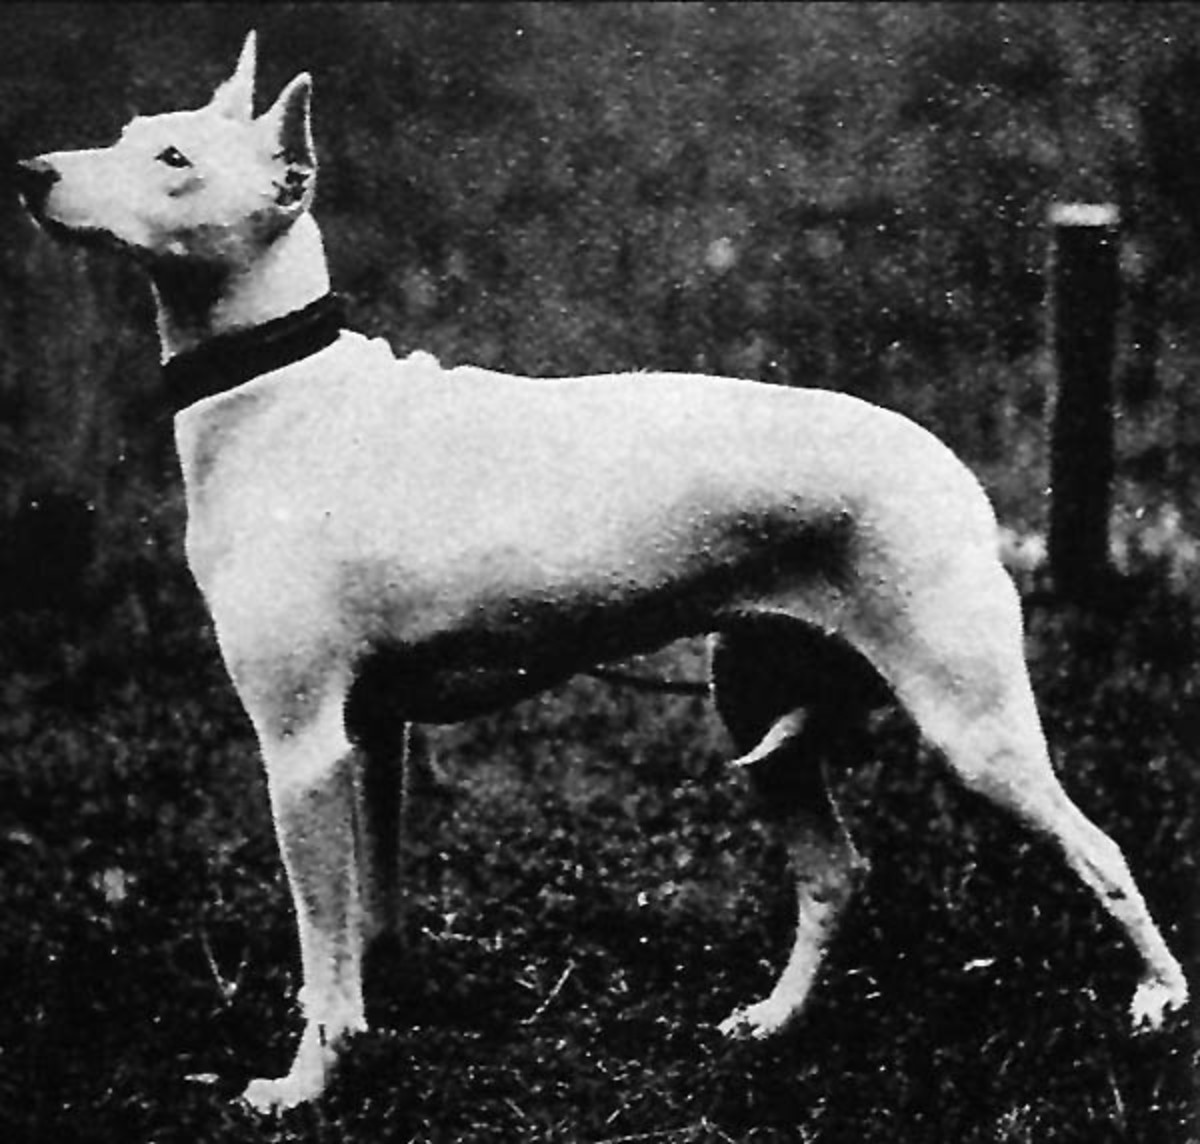 A beautiful example of the Bull Terrier's extinct forerunner, the White English Terrier, already showing the white coat, muscled body and erect ears.